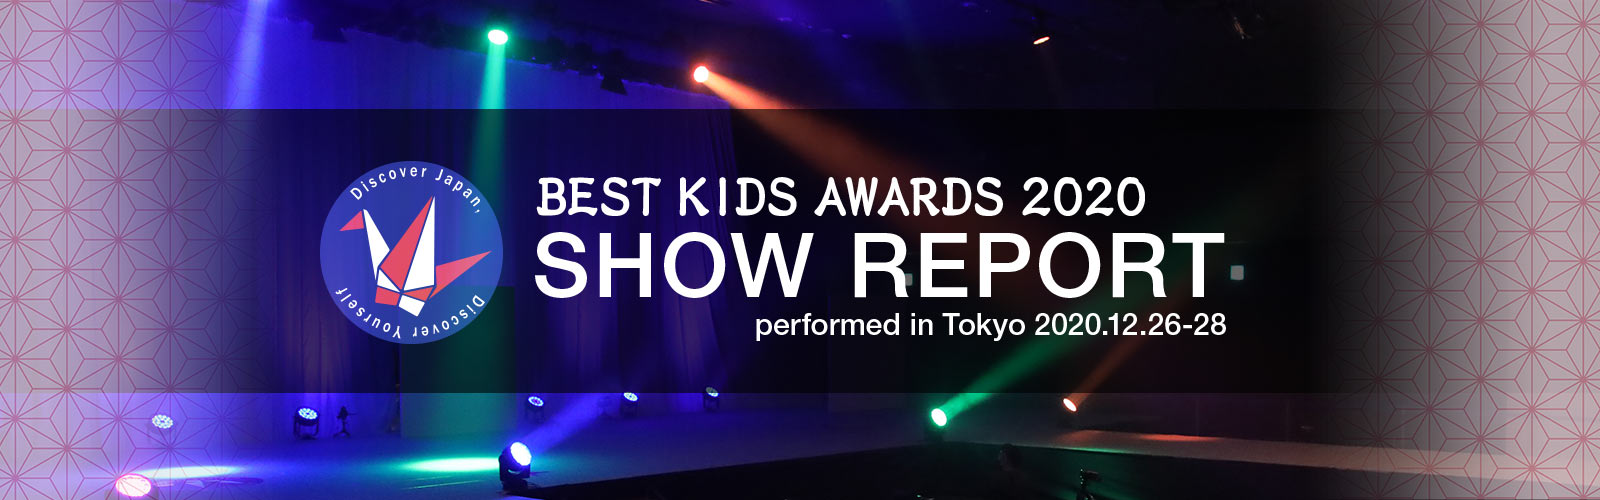 BEST KIDS AWARDS 2020 開催レポート